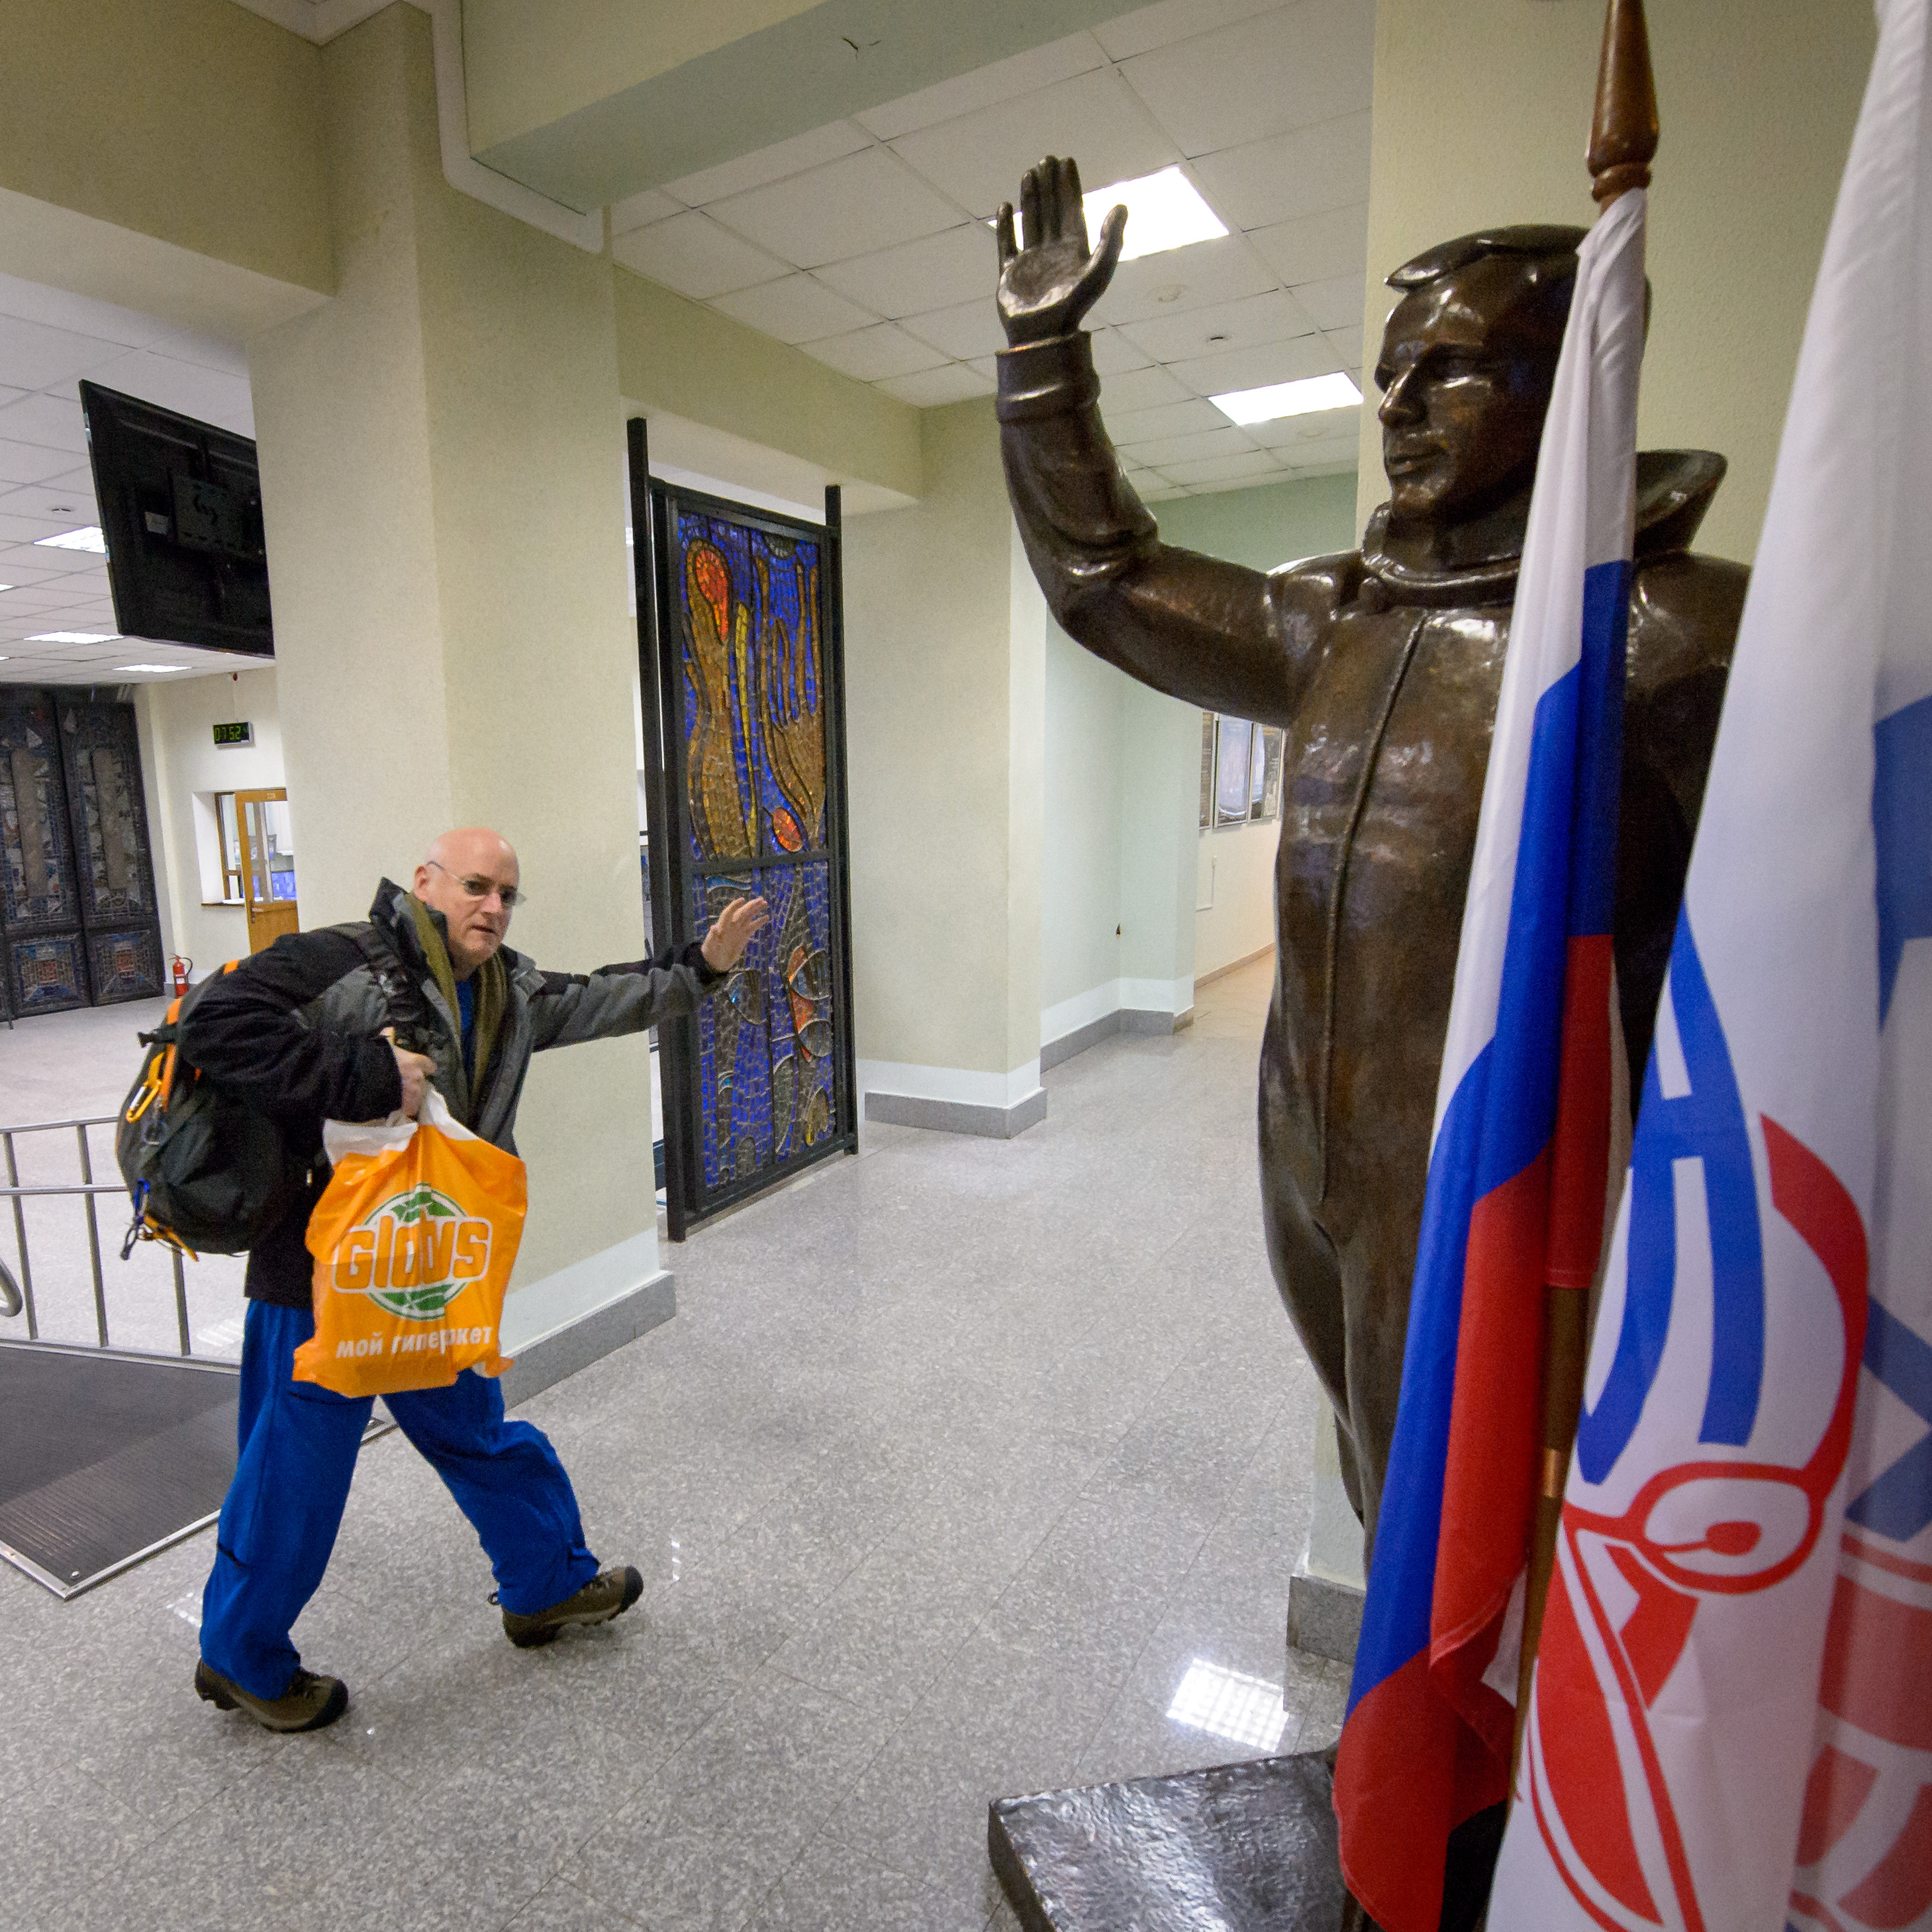 NASA Astronaut Scott Kelly waves hello as he passes a statue of Russian Cosmonaut Yuri Gagarin Thursday, March 5, 2015 at the Gagarin Cosmonaut Training Center (GCTC) Soyuz training facility in Star City, Russia